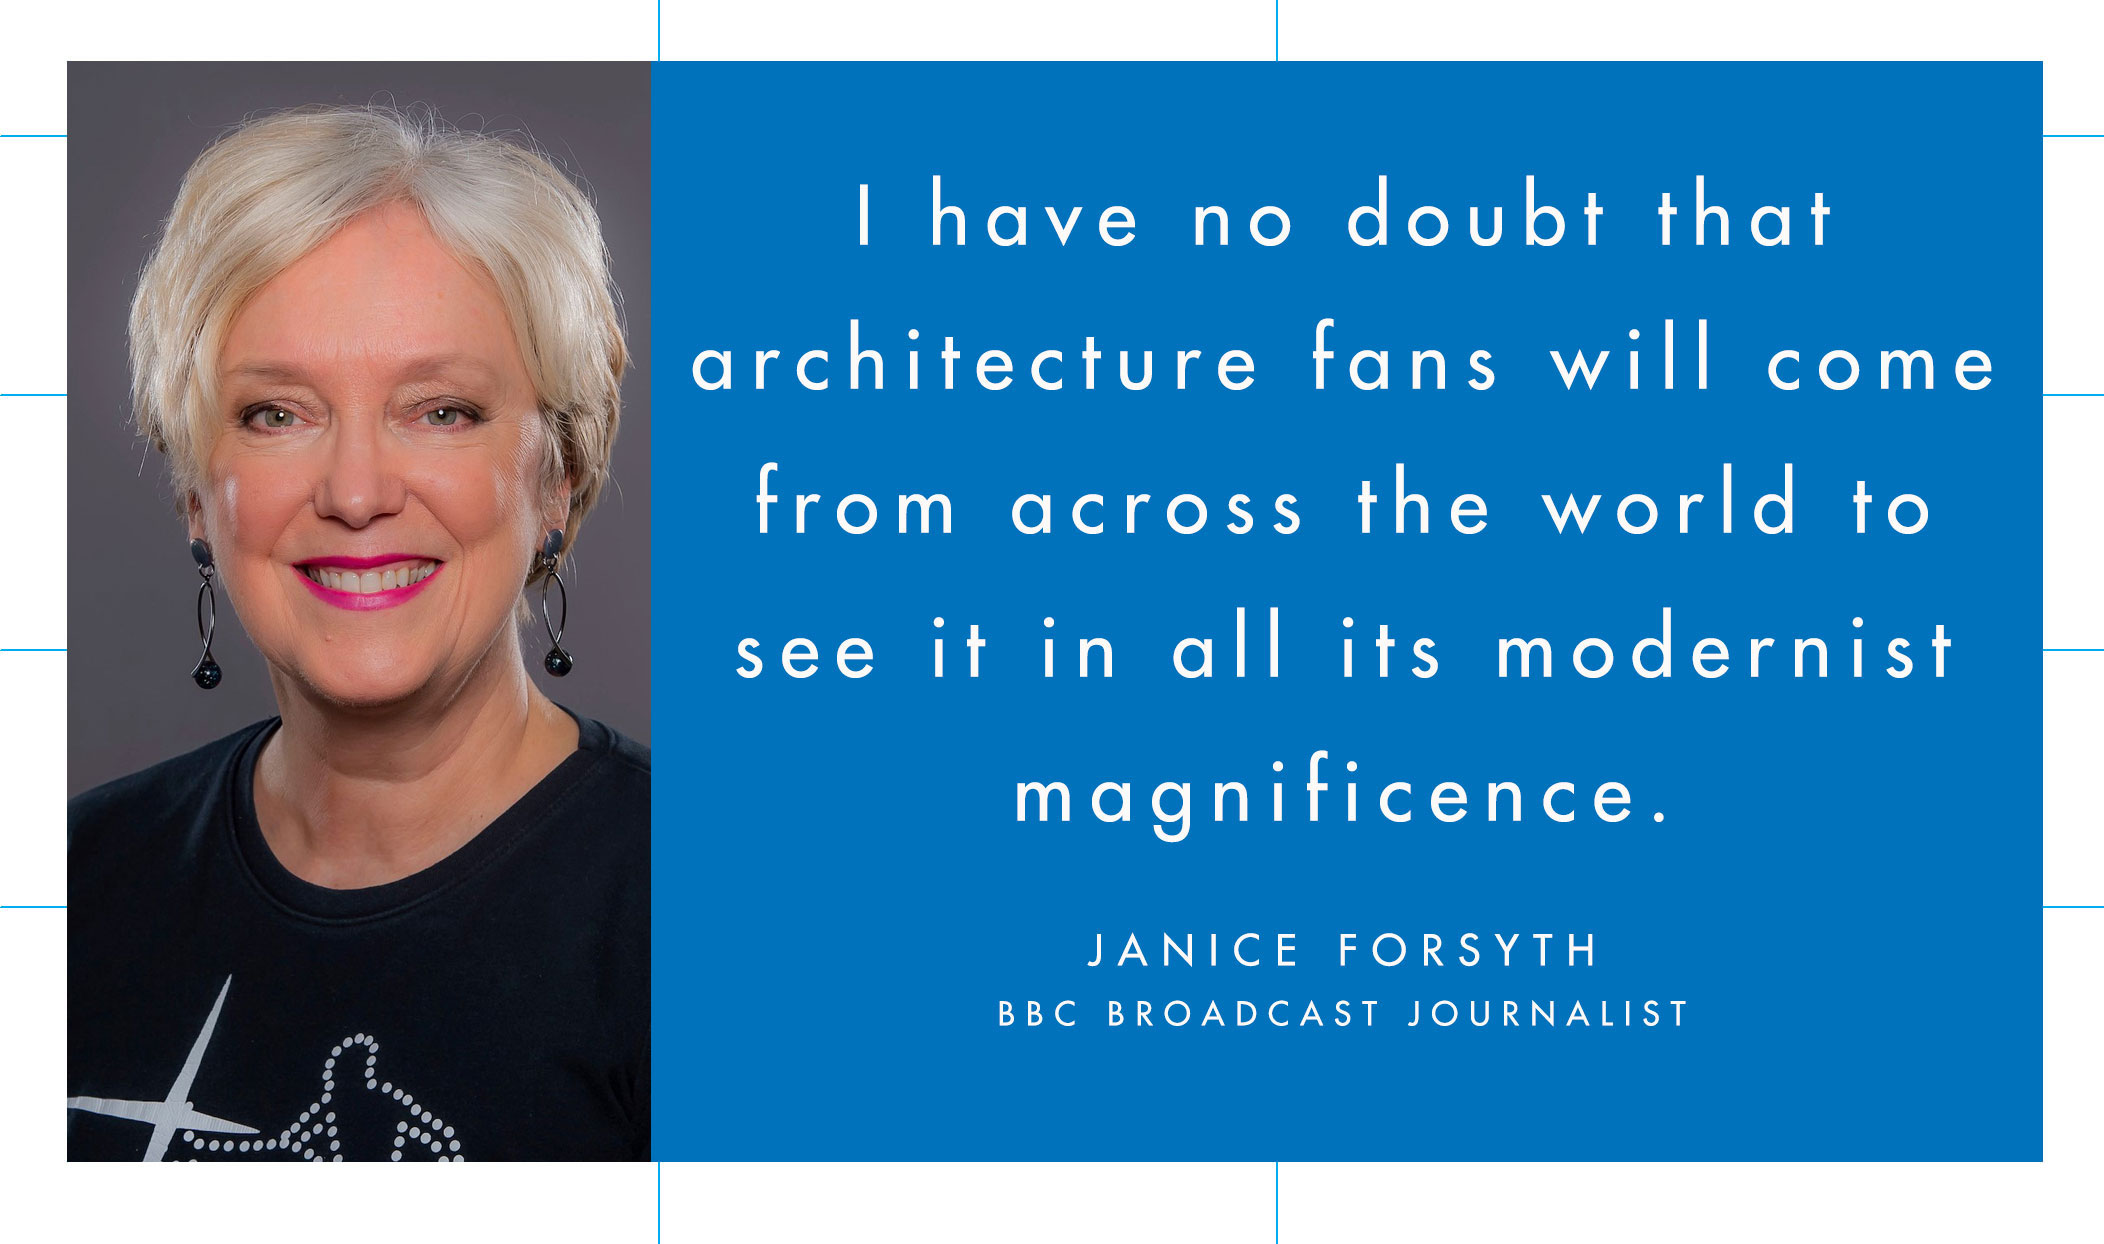 The-Pavilion-JANICE-FOSYTH-quote